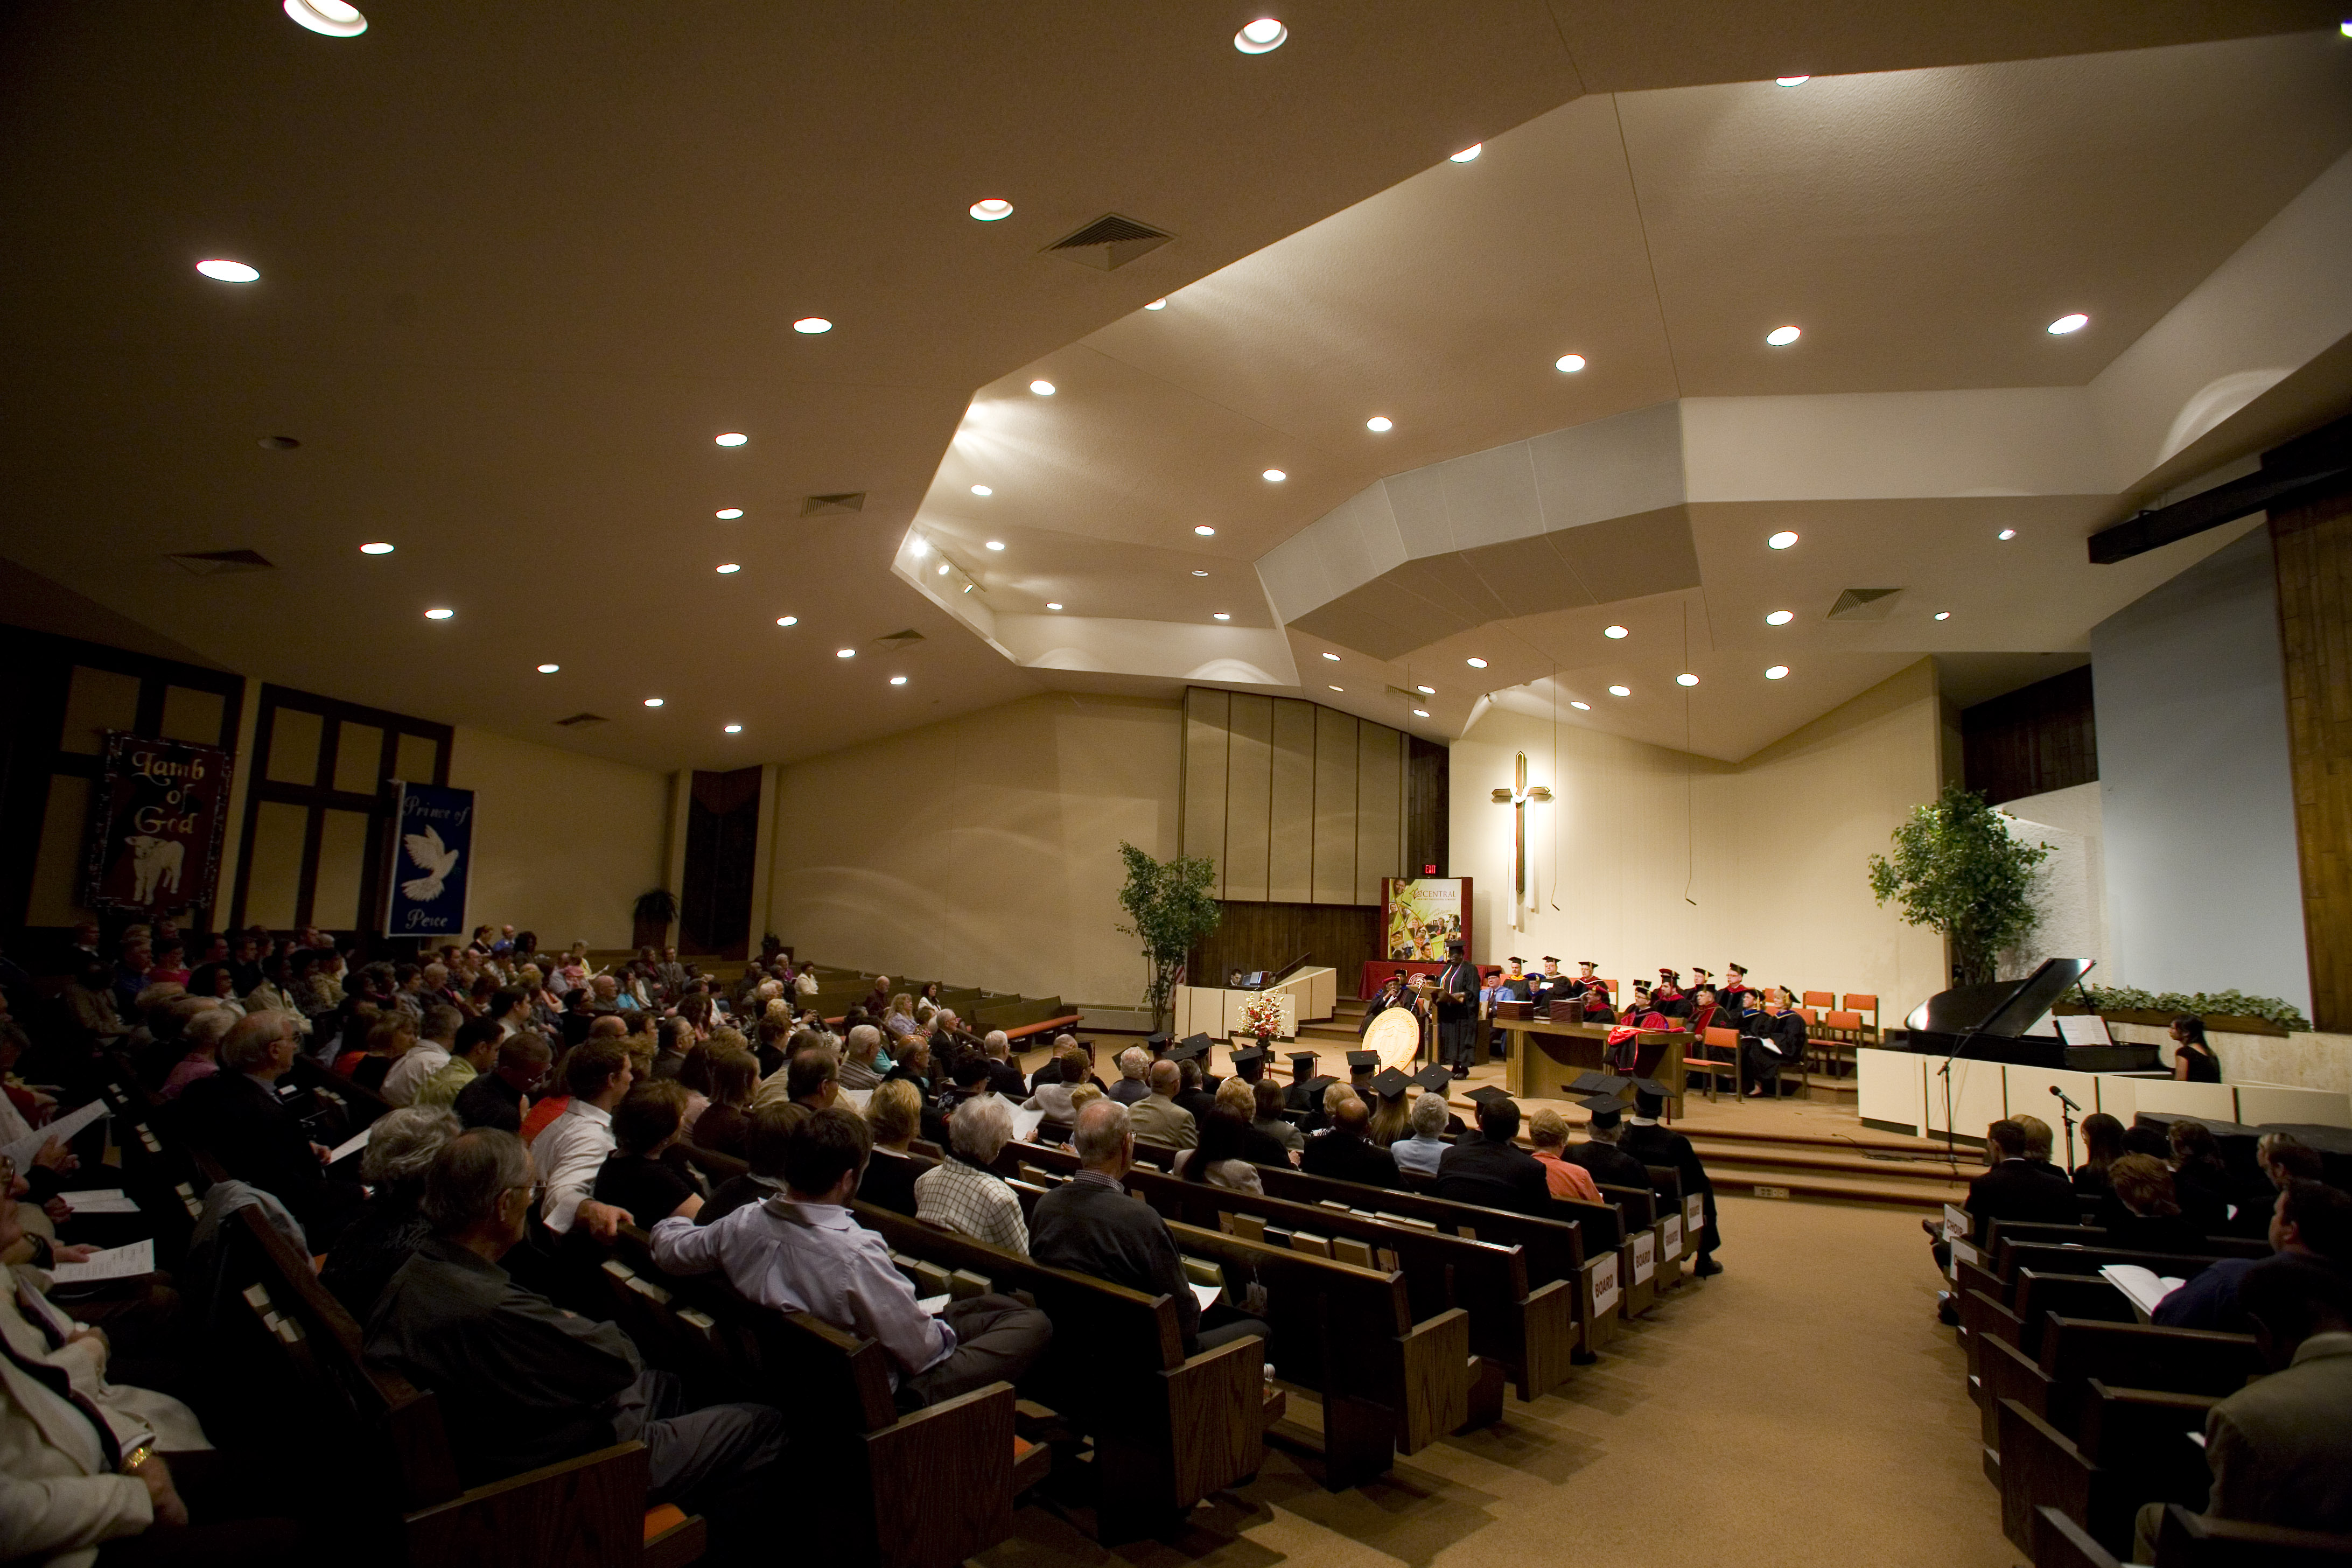 Cbf Churches Regularly Host Events For Central Such As The Commencement Ceremony Pictured Below At Holmeswood